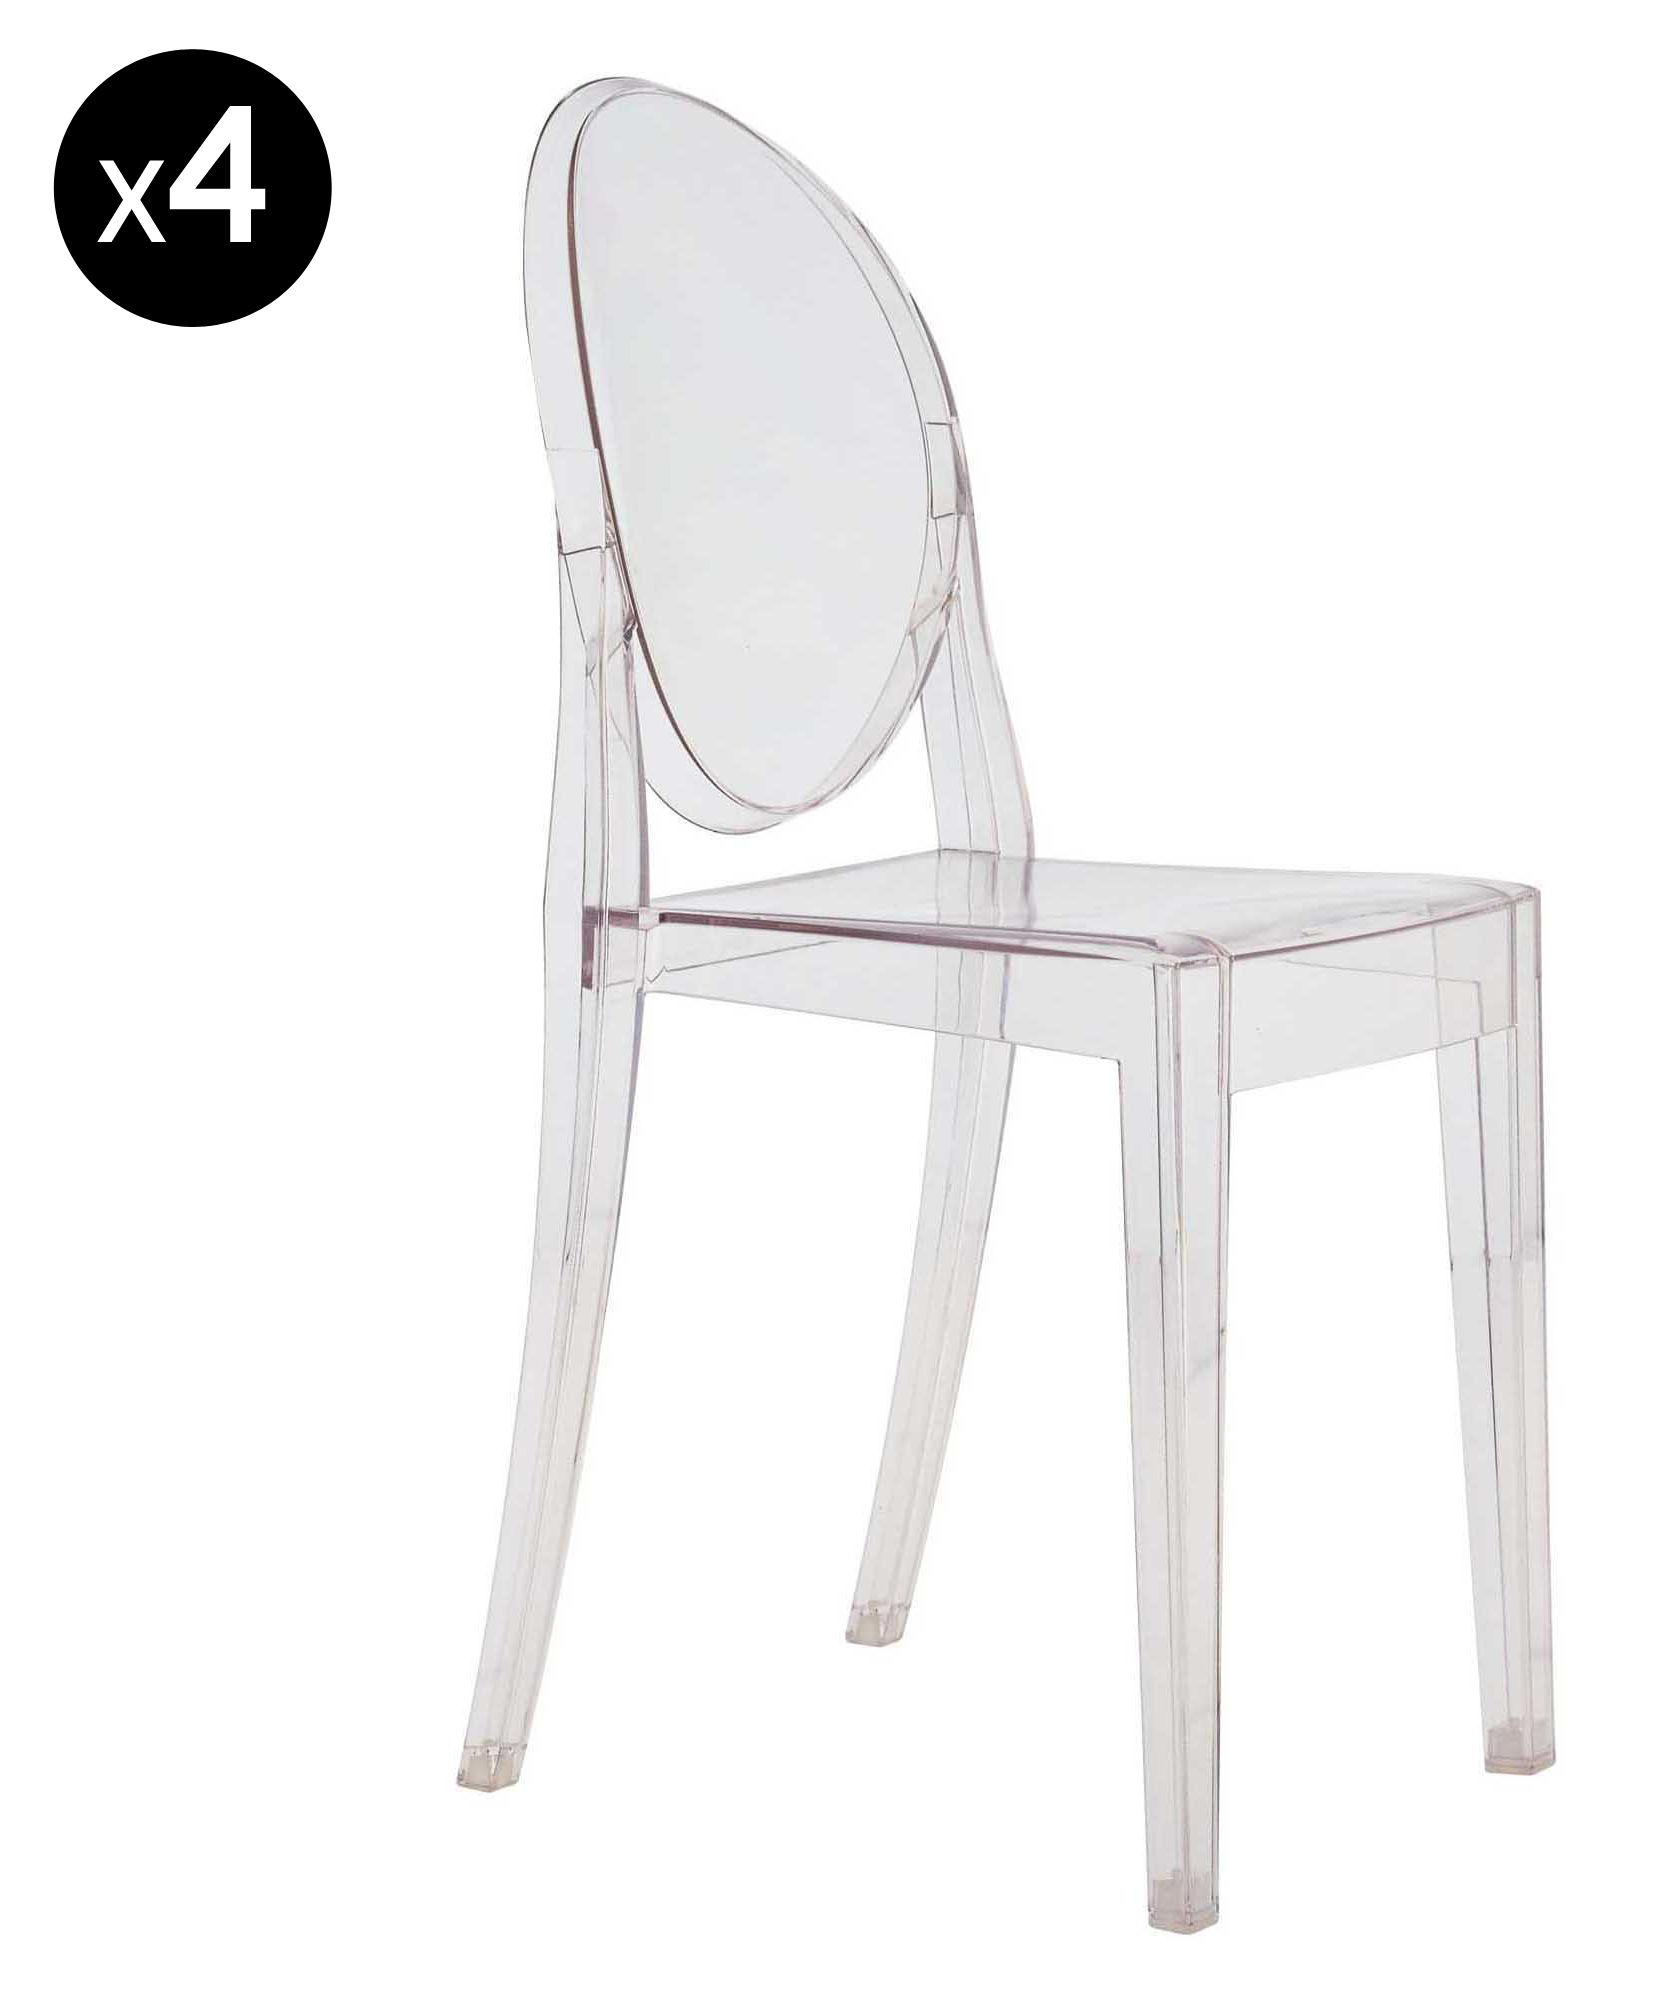 Chaise empilable Victoria Ghost / Lot de 4 Cristal - Kartell